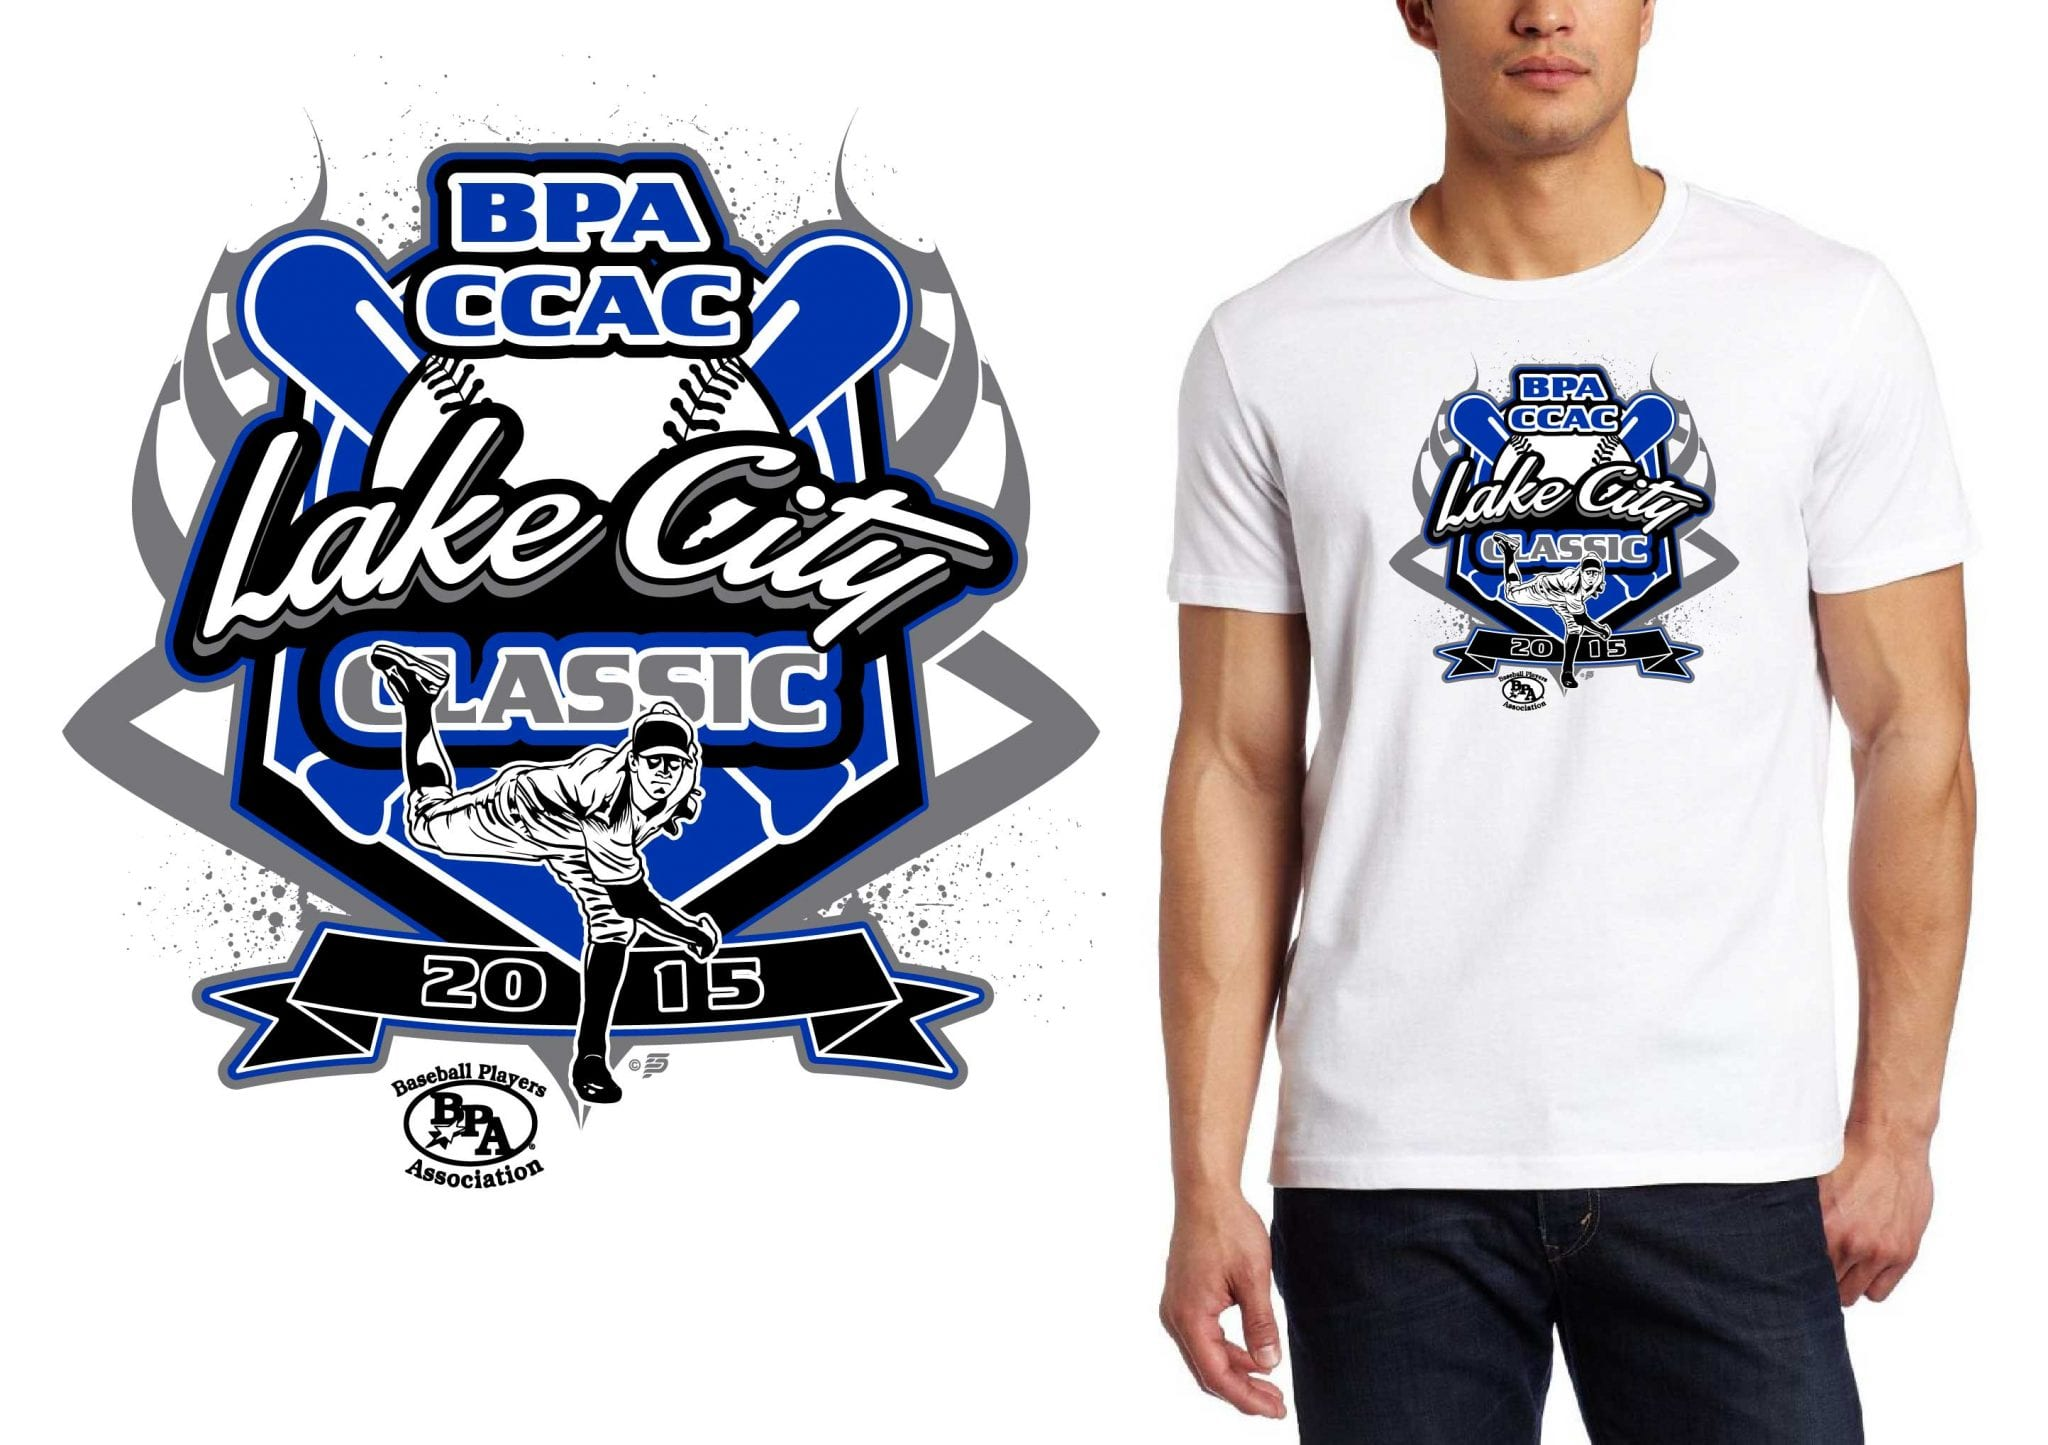 Design t shirt baseball - Design T Shirts Logo 2015 Bpa Ccac Lake City Classic Professional Baseball Logo Design For